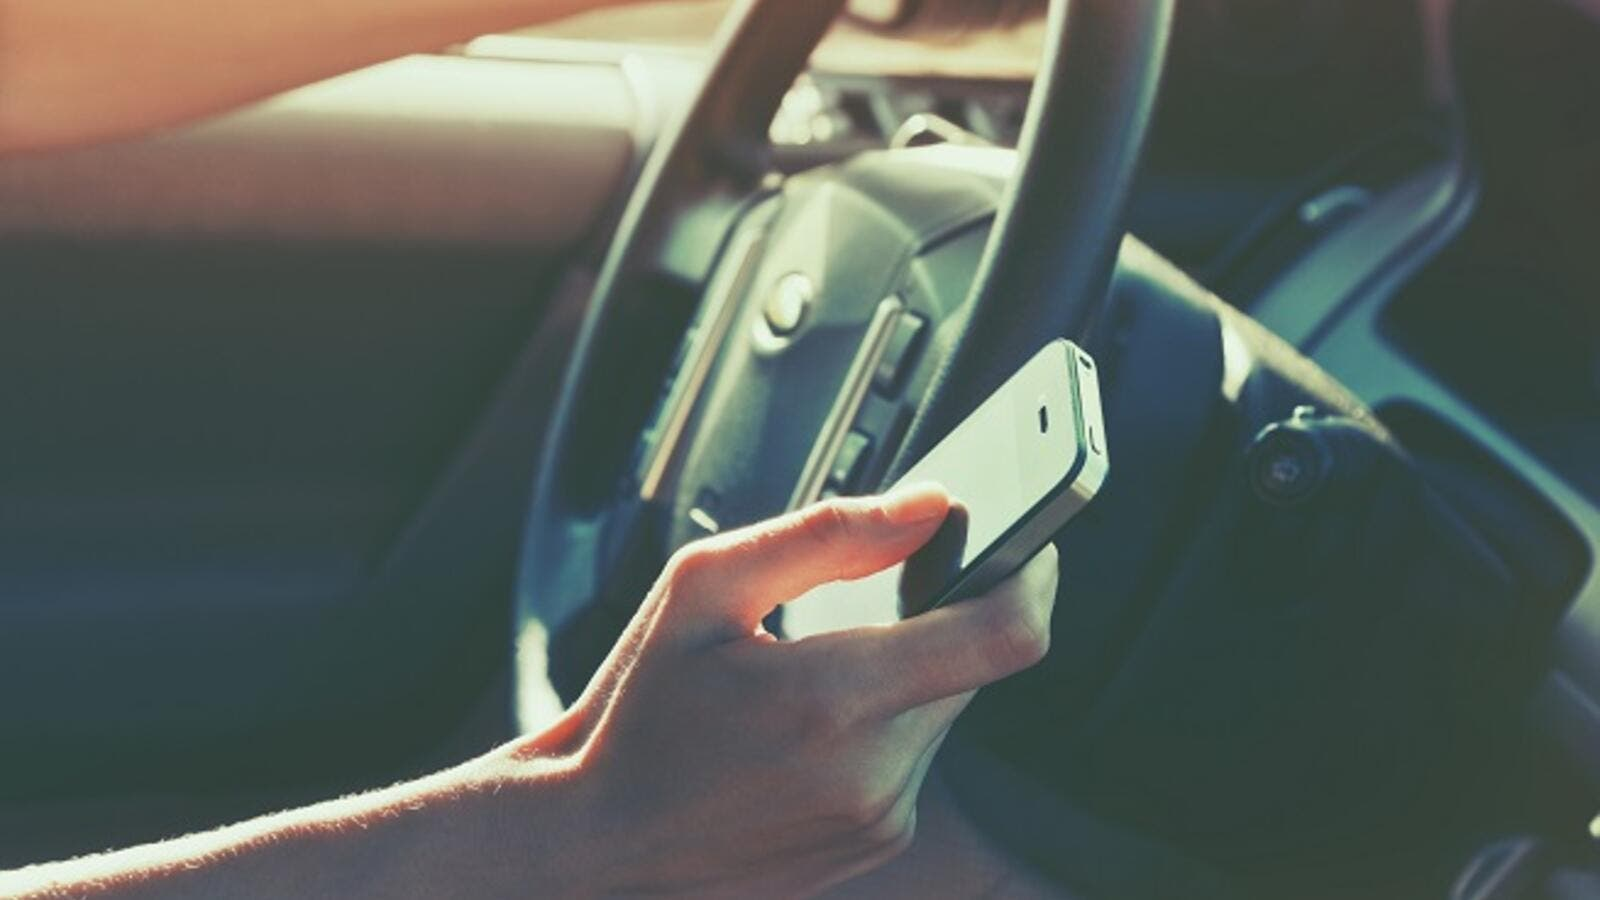 Use of Mobile Phone While Driving a 'Traffic Violation